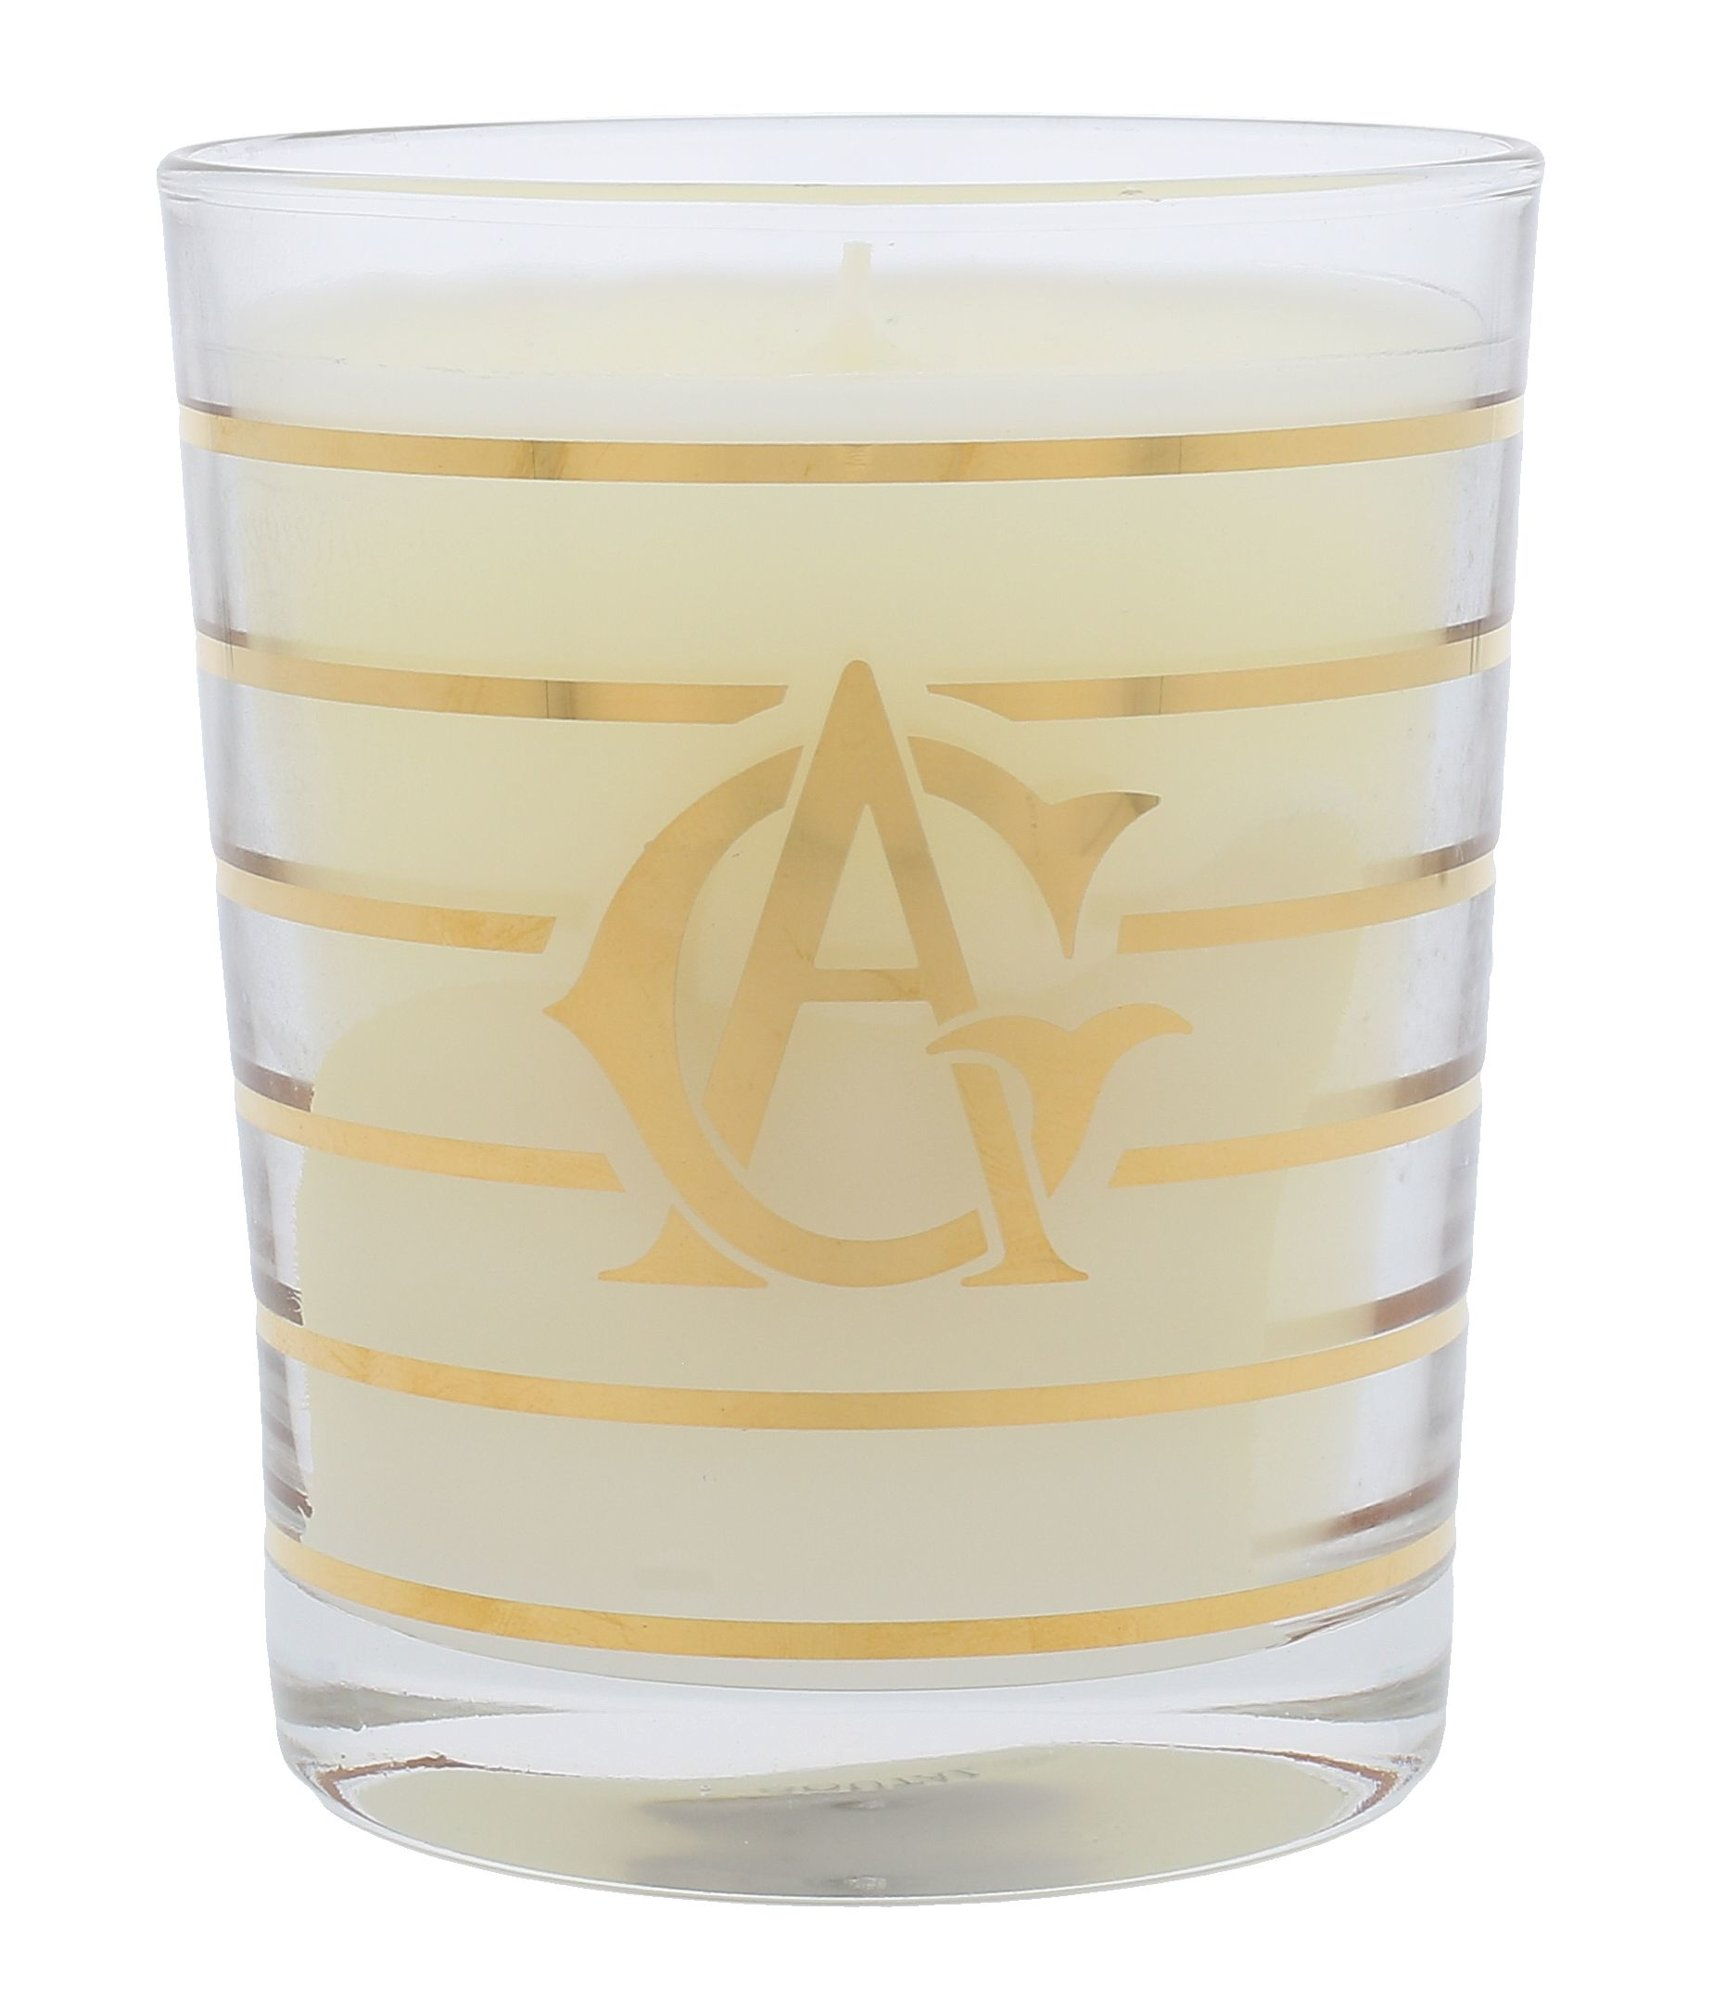 Annick Goutal Noël scented candle 175ml